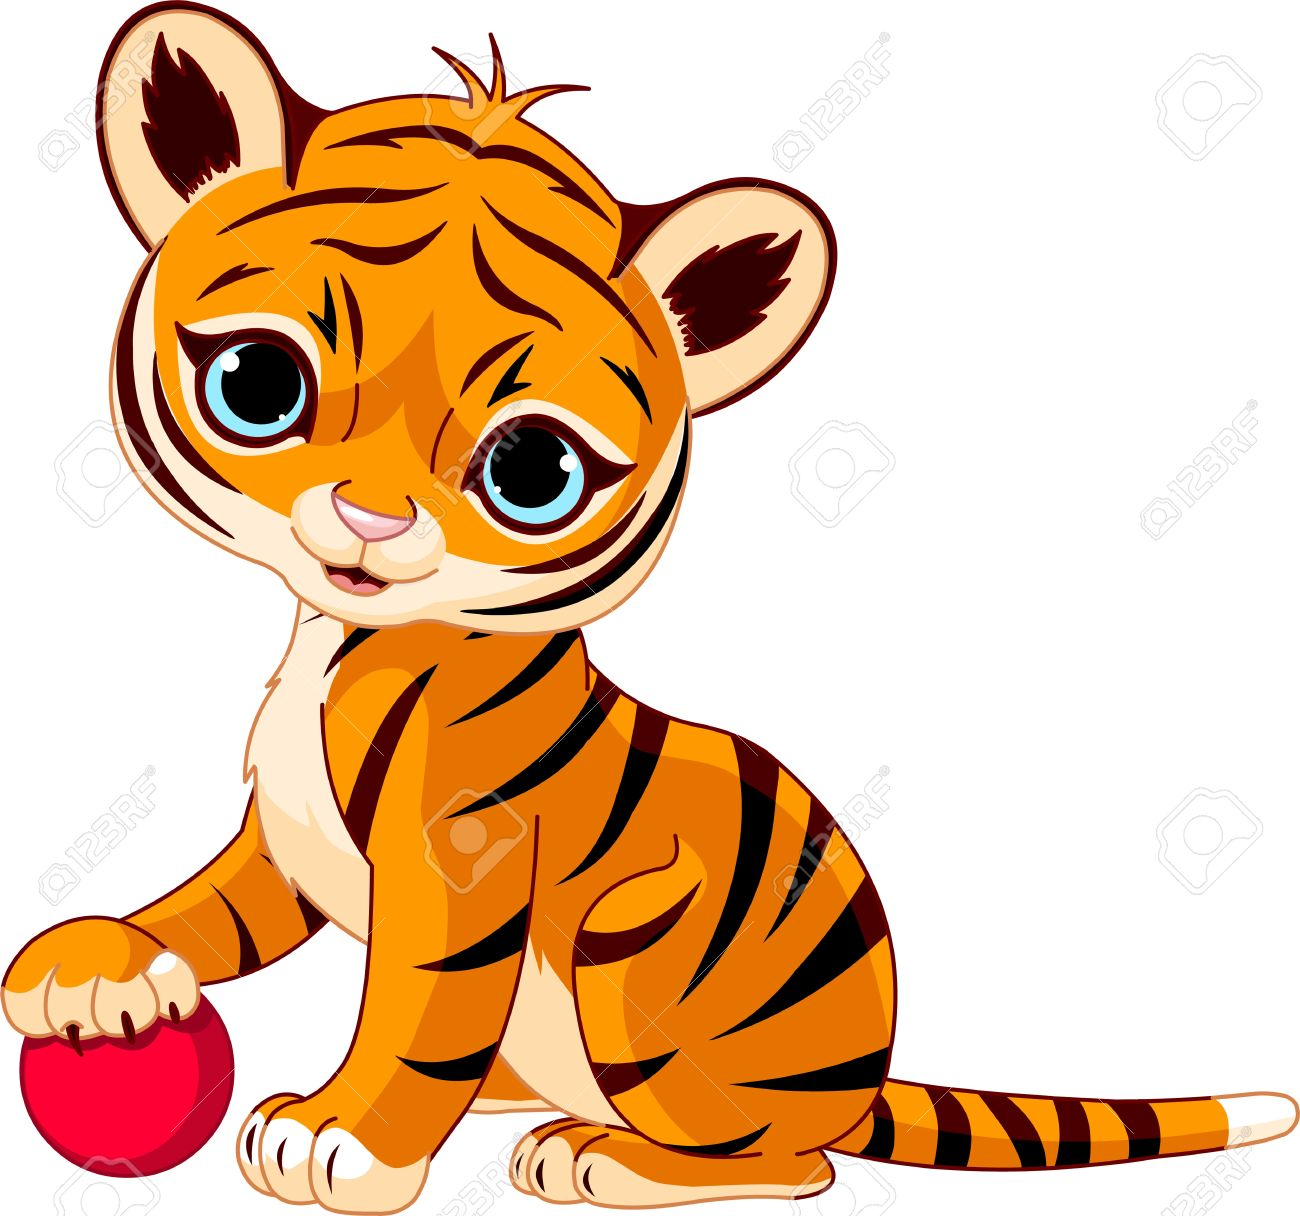 cute tiger cub playing with red boll royalty free cliparts vectors rh 123rf com tiger cub clipart cute tiger cub clipart